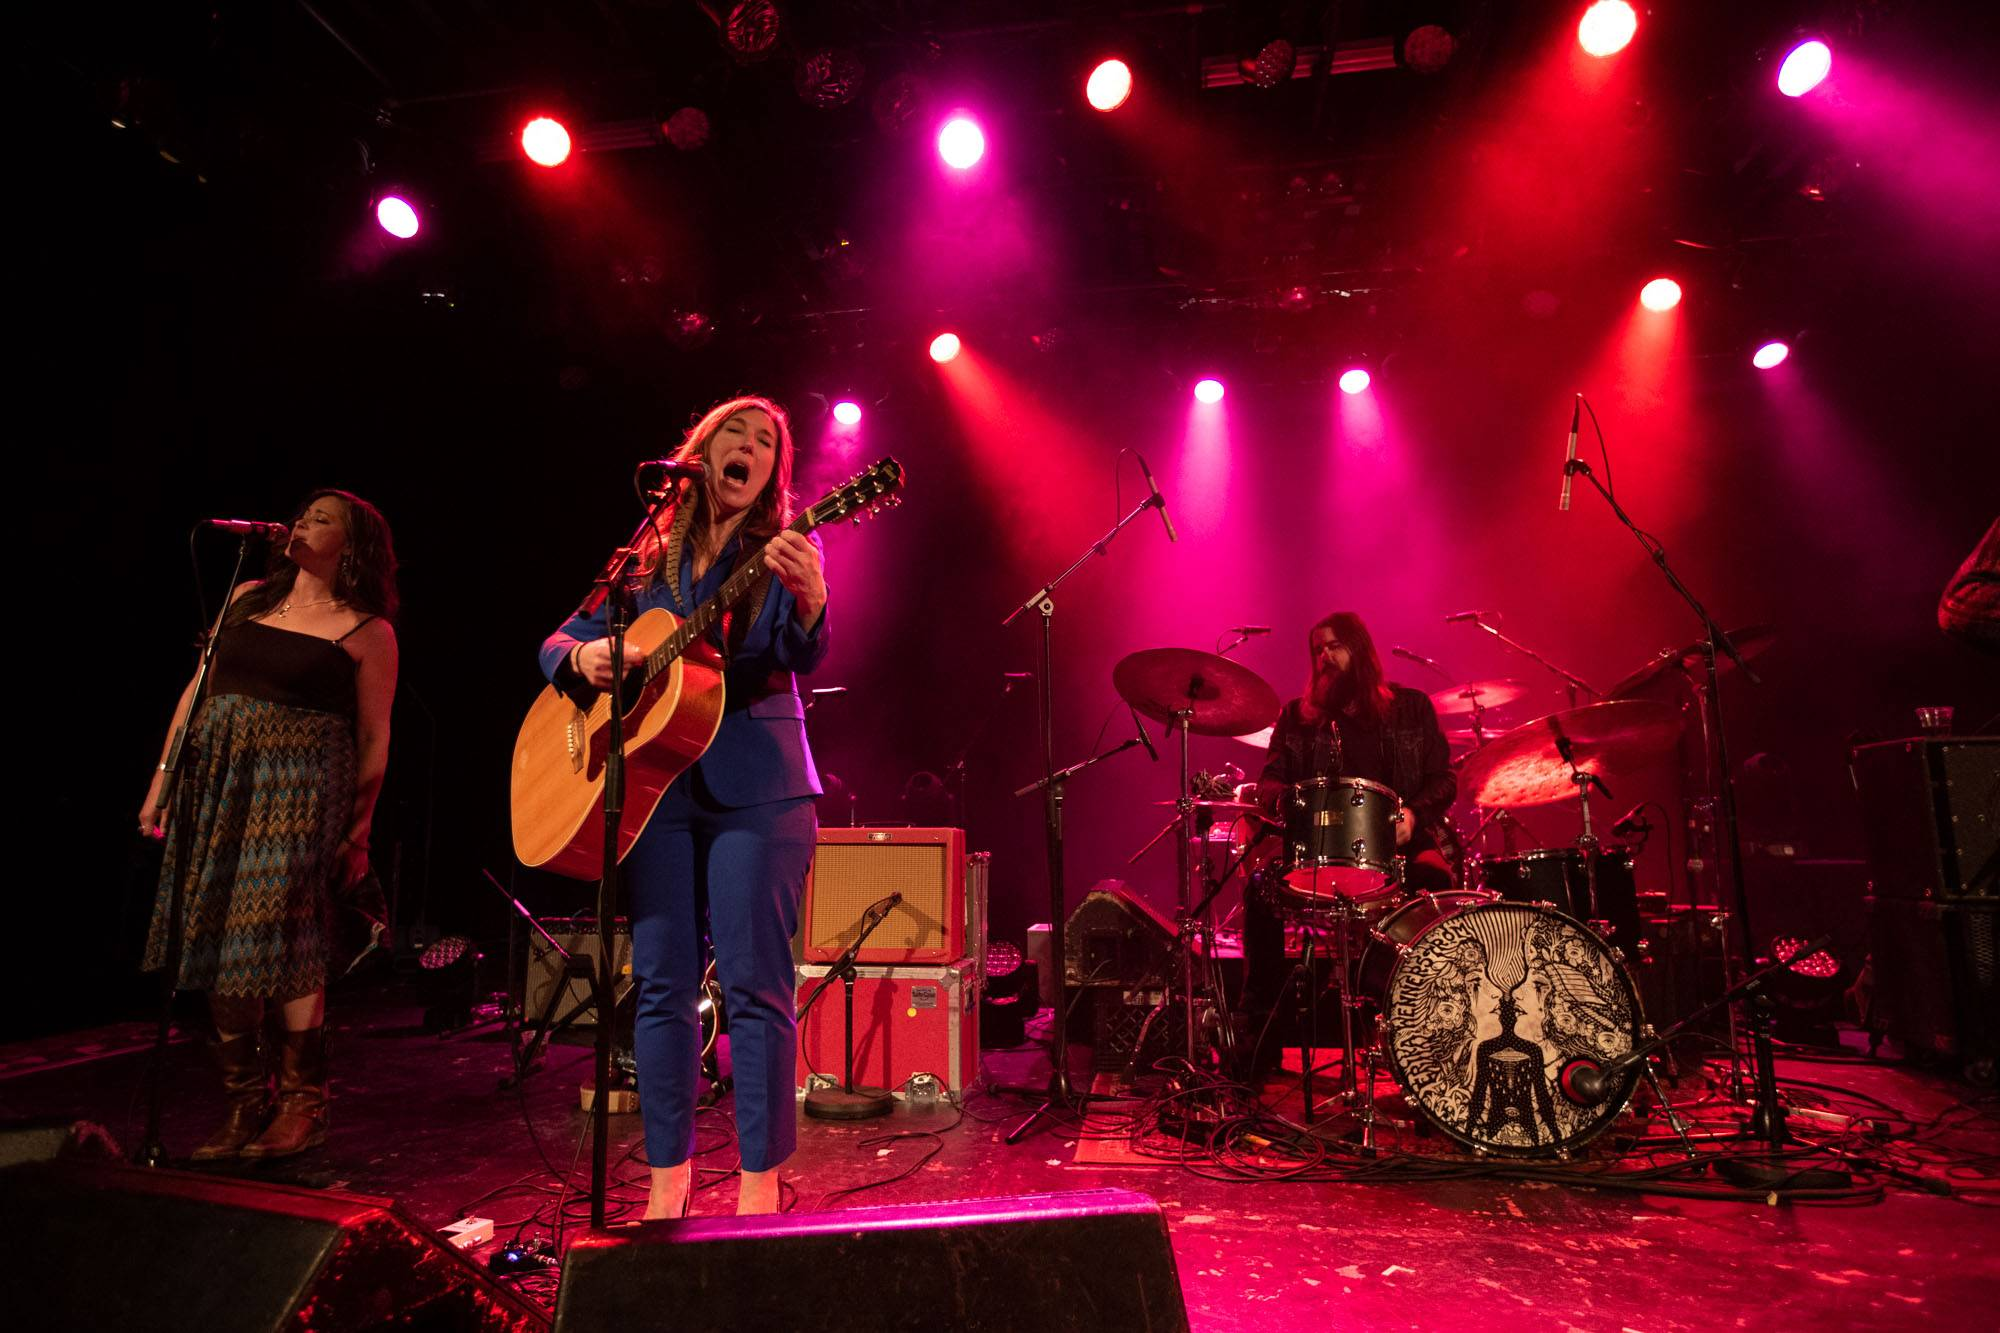 Erika Wennerstrom at the Commodore Ballroom, Vancouver, Nov 7 2018. Kirk Chantraine photo.